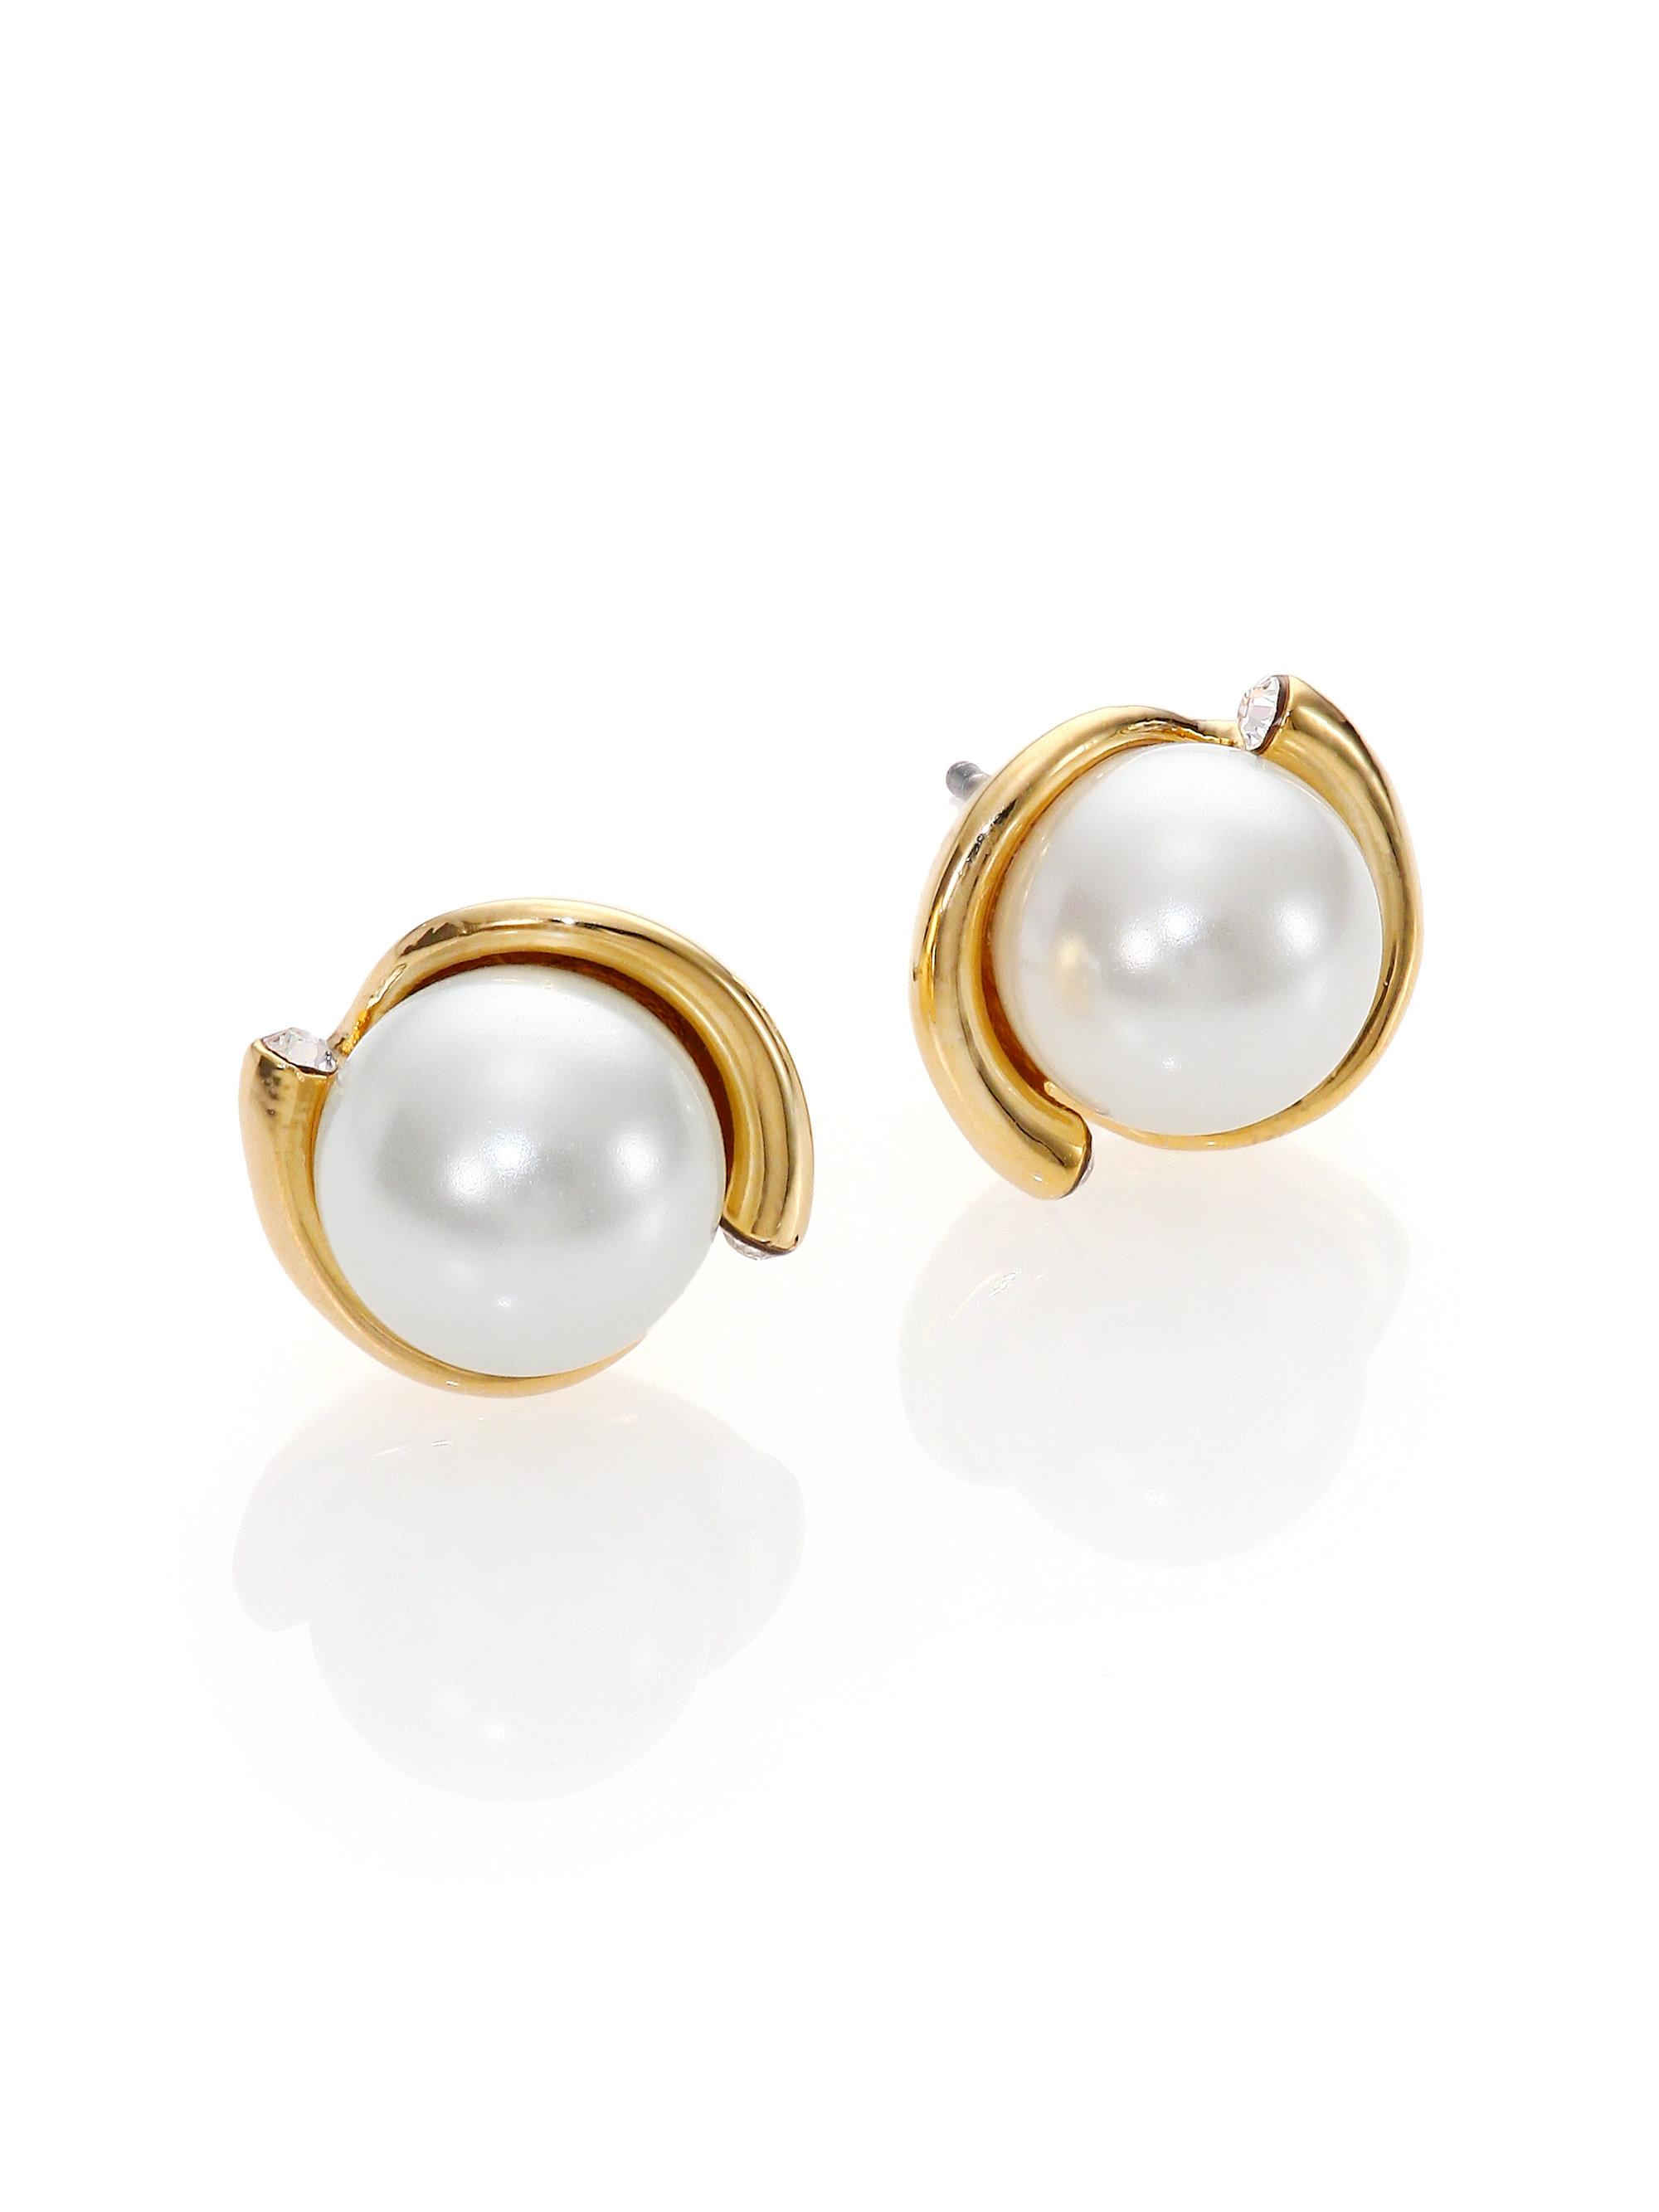 faux silver millen gb logo karen earrings stud jewellery colour pearl womens accessories